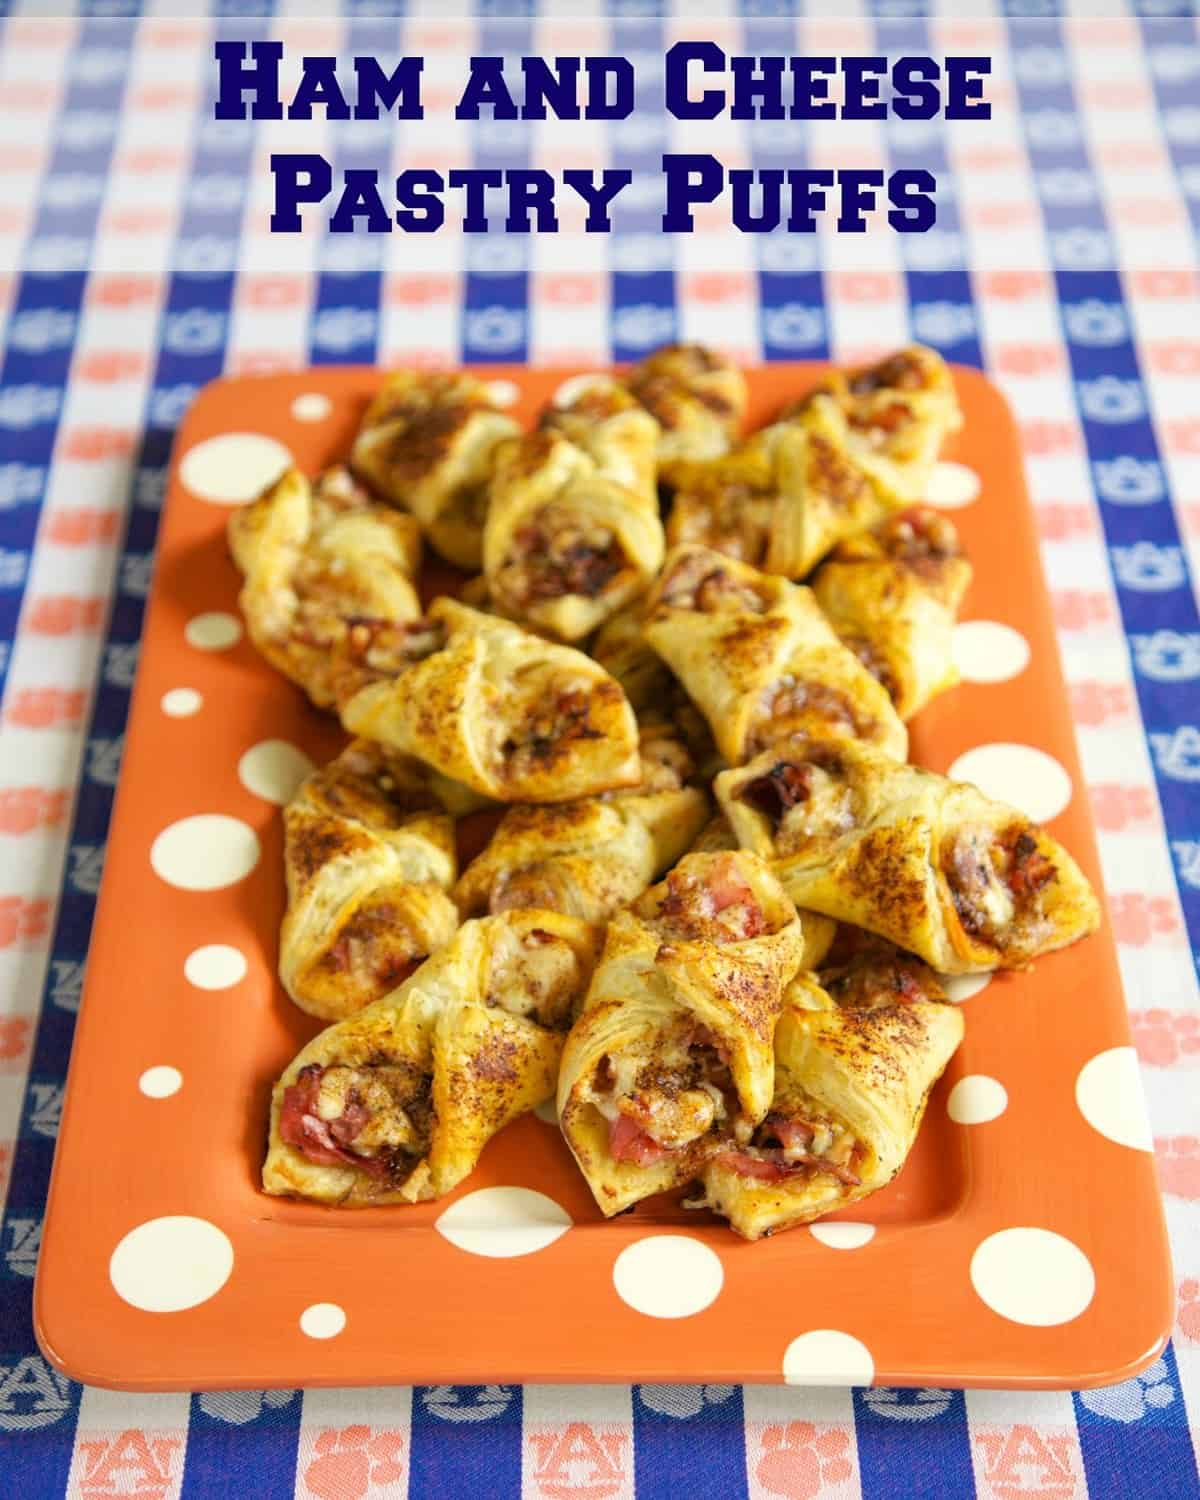 Ham and Cheese Pastry Puffs ~ These are easy to make and taste amazing - ham, cheese, and seasoning wrapped in puff pastry - can assemble and freeze for later. These are SO good. Great for parties or a quick lunch or dinner.